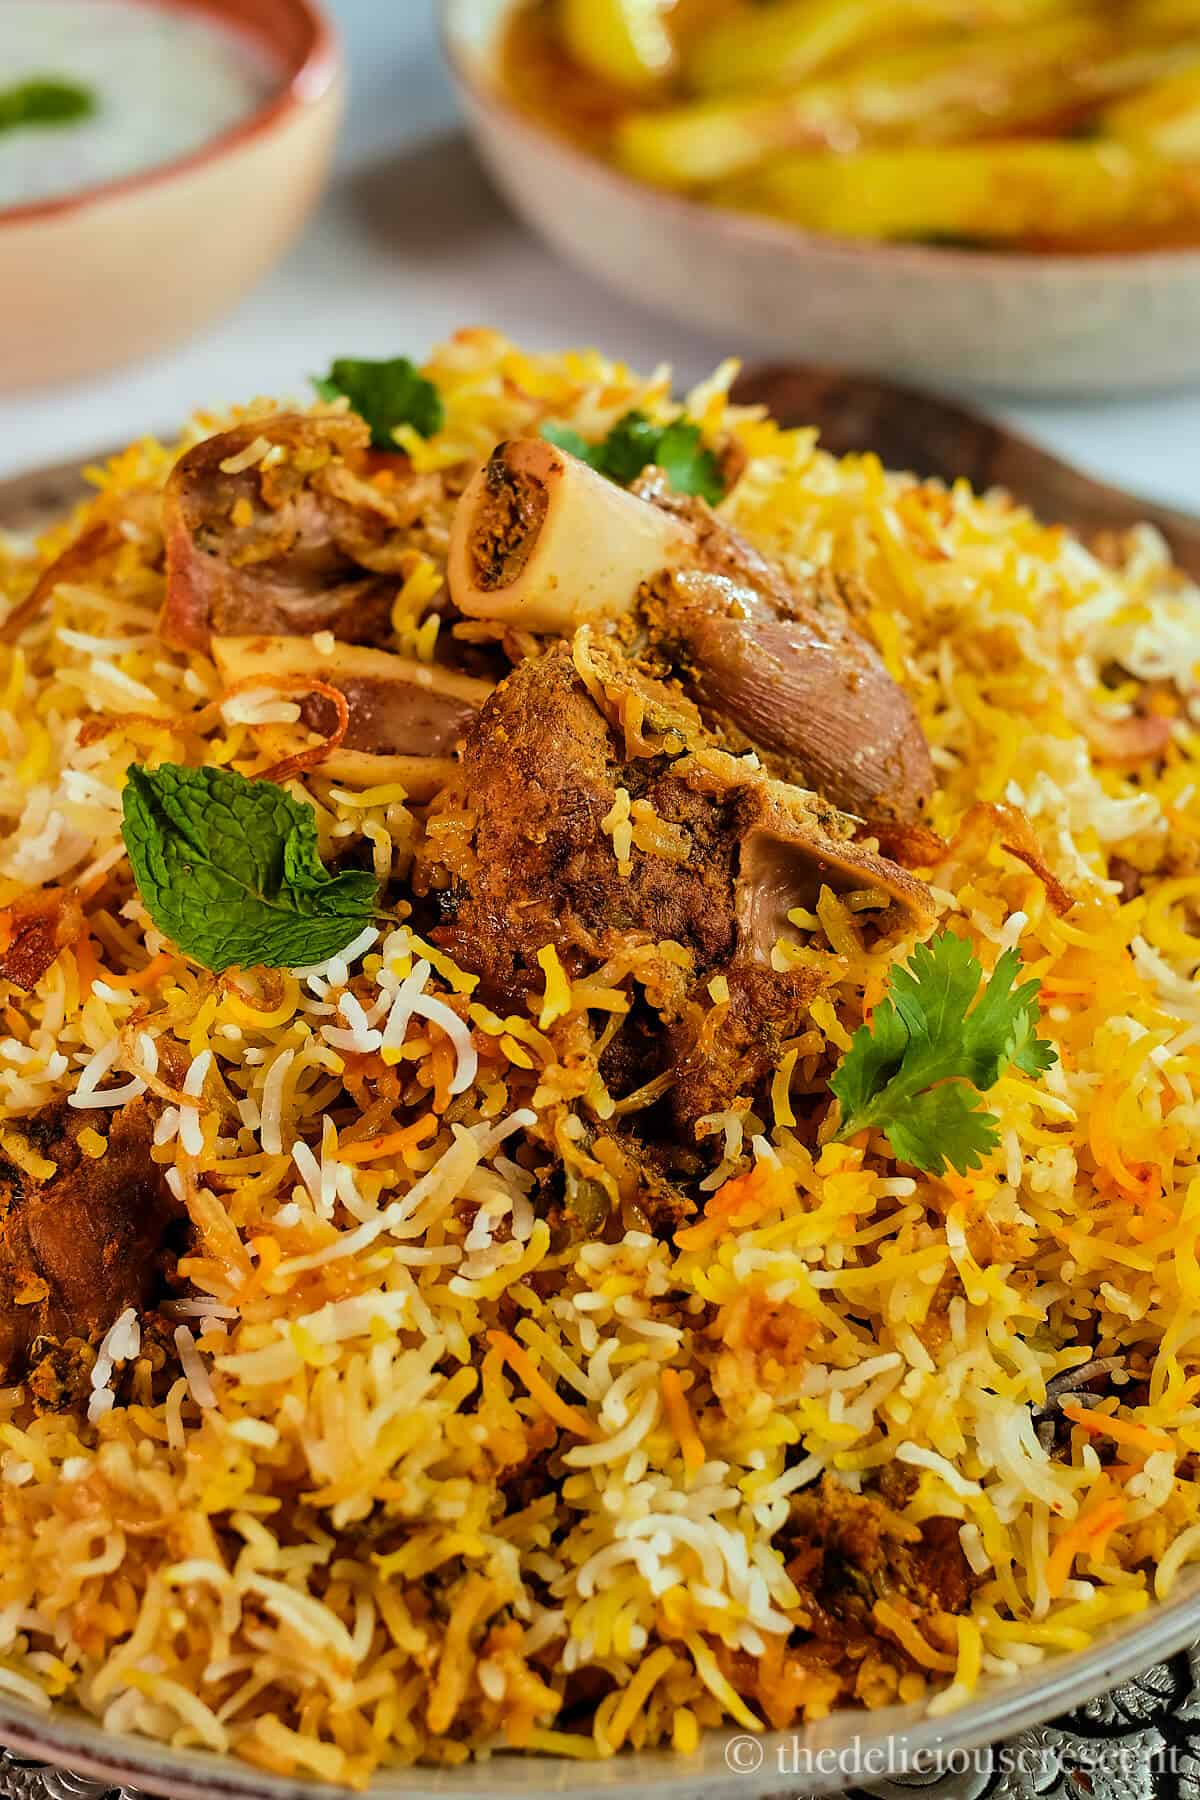 Chunks of marinated lamb on top of a mound of spiced Indian rice.